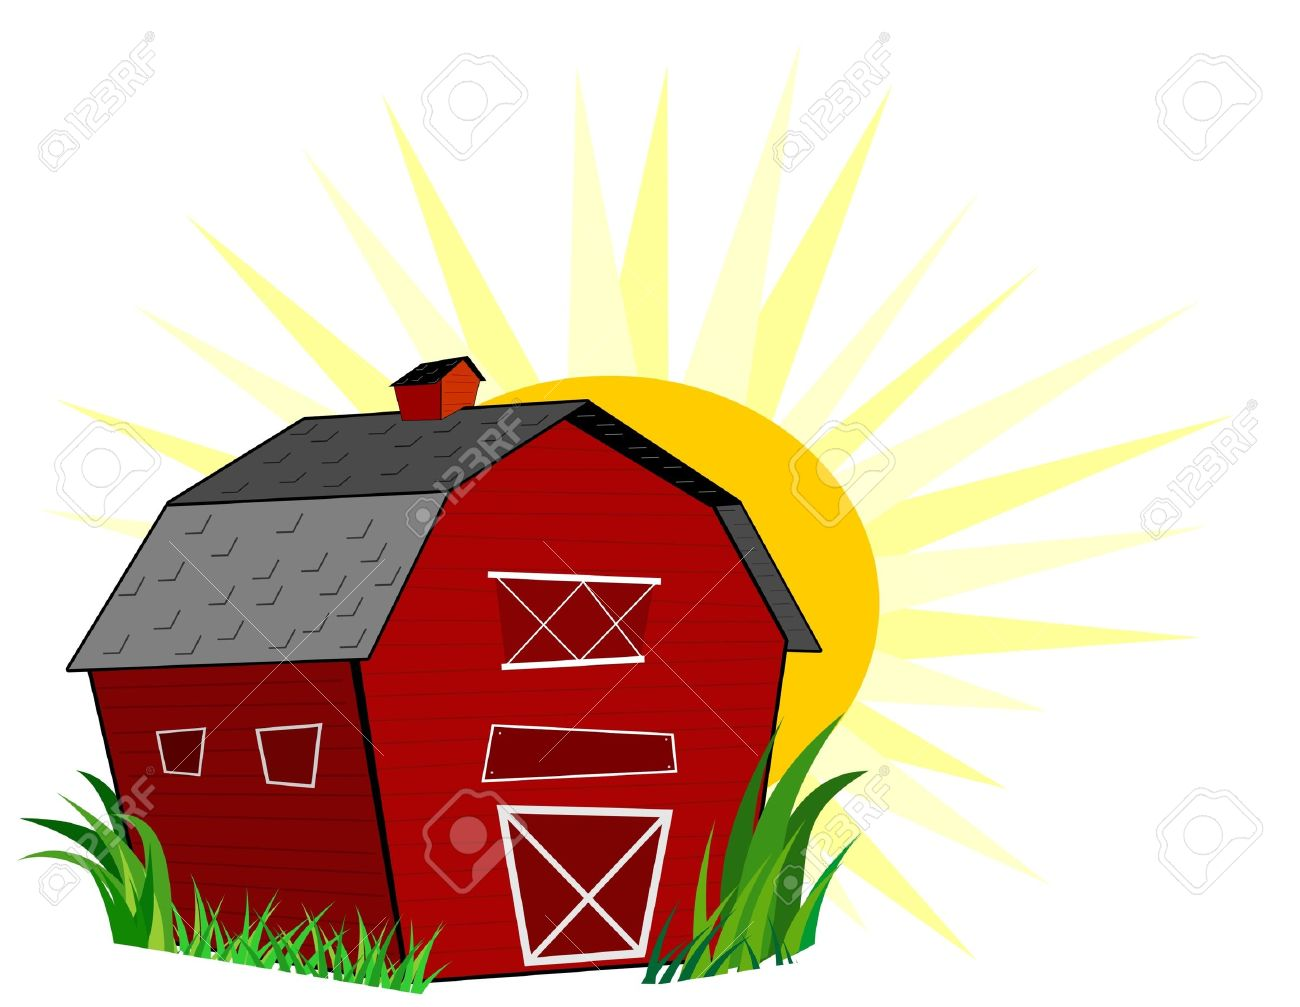 barn roof stock photos royalty free barn roof images and pictures